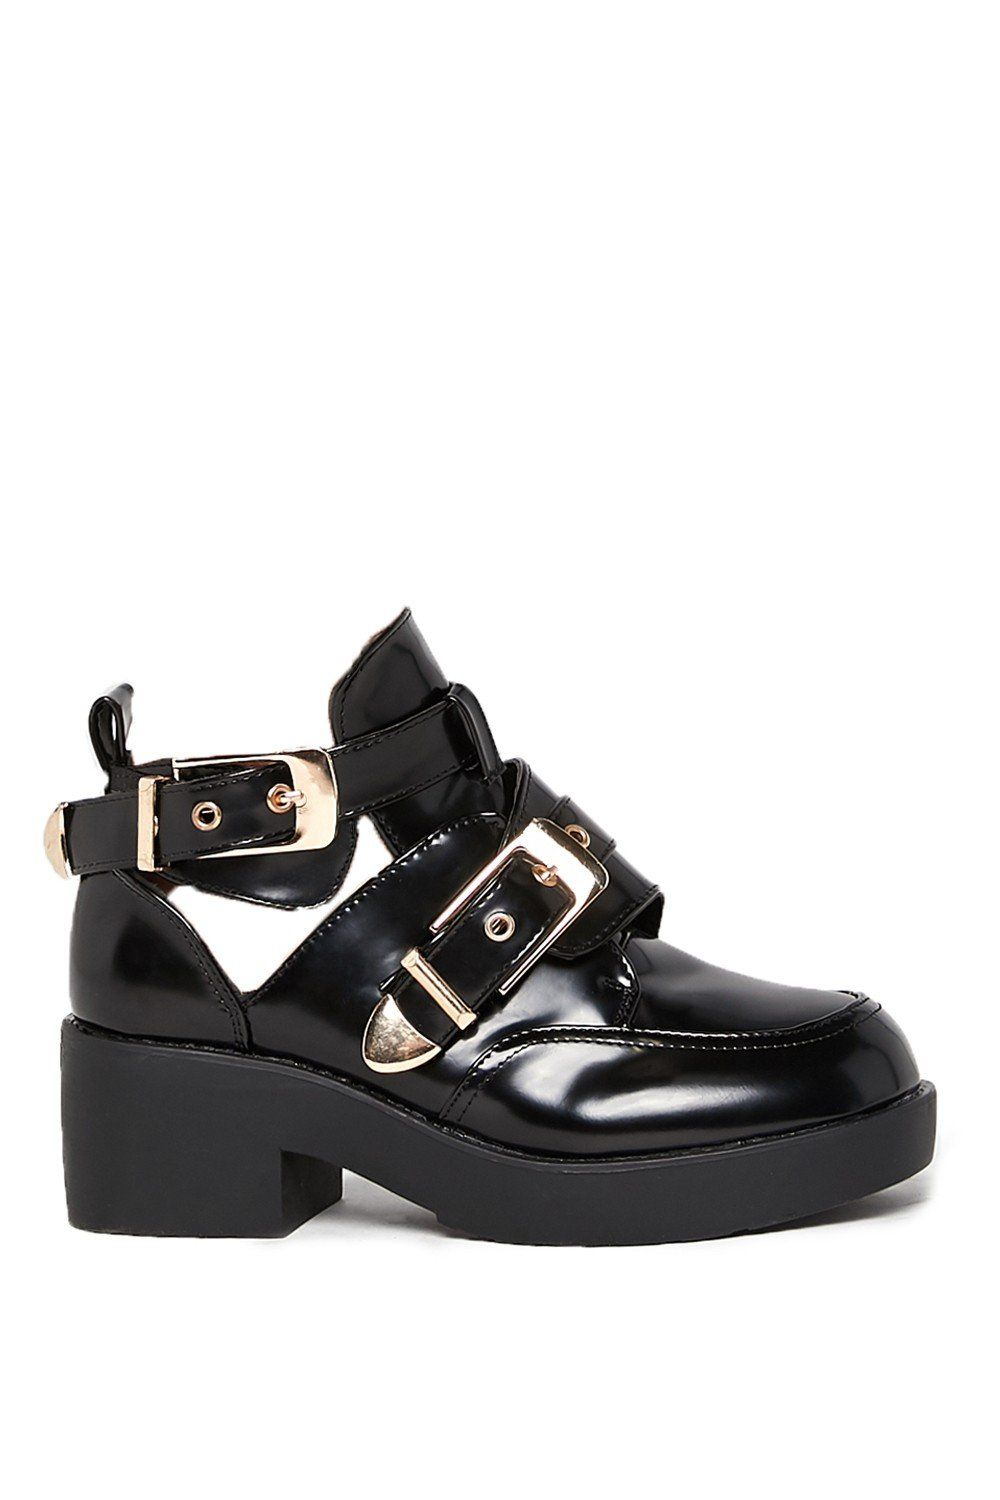 a1da0bf5613 Kayla Black Buckle Cut Out Boots from  misspap